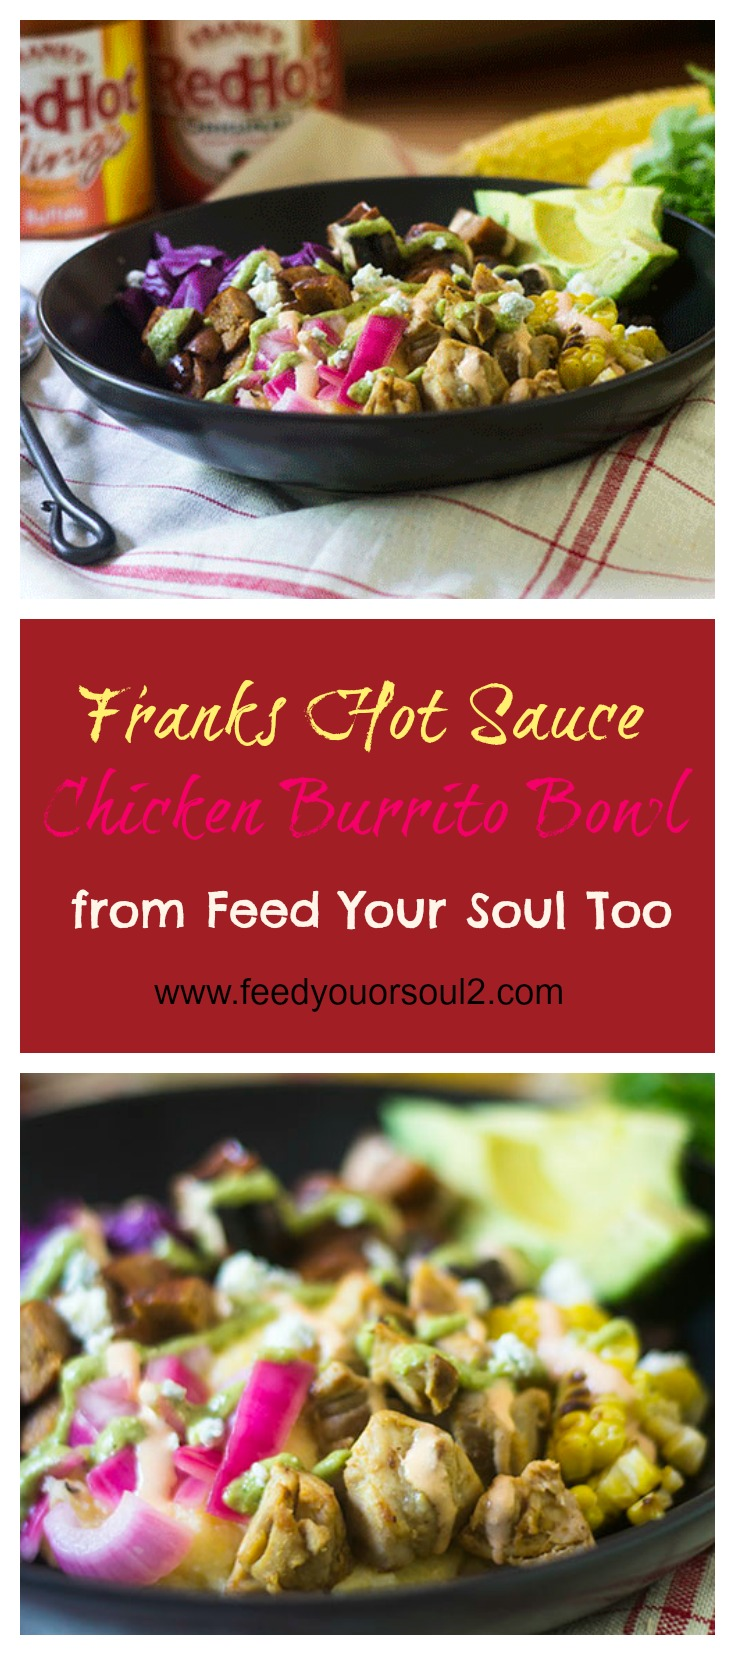 Franks RedHot Sauce Chicken Burrito Bowl #dinner #promotion #chicken #frank'sRedHotSauce | feedyoursoul2.com